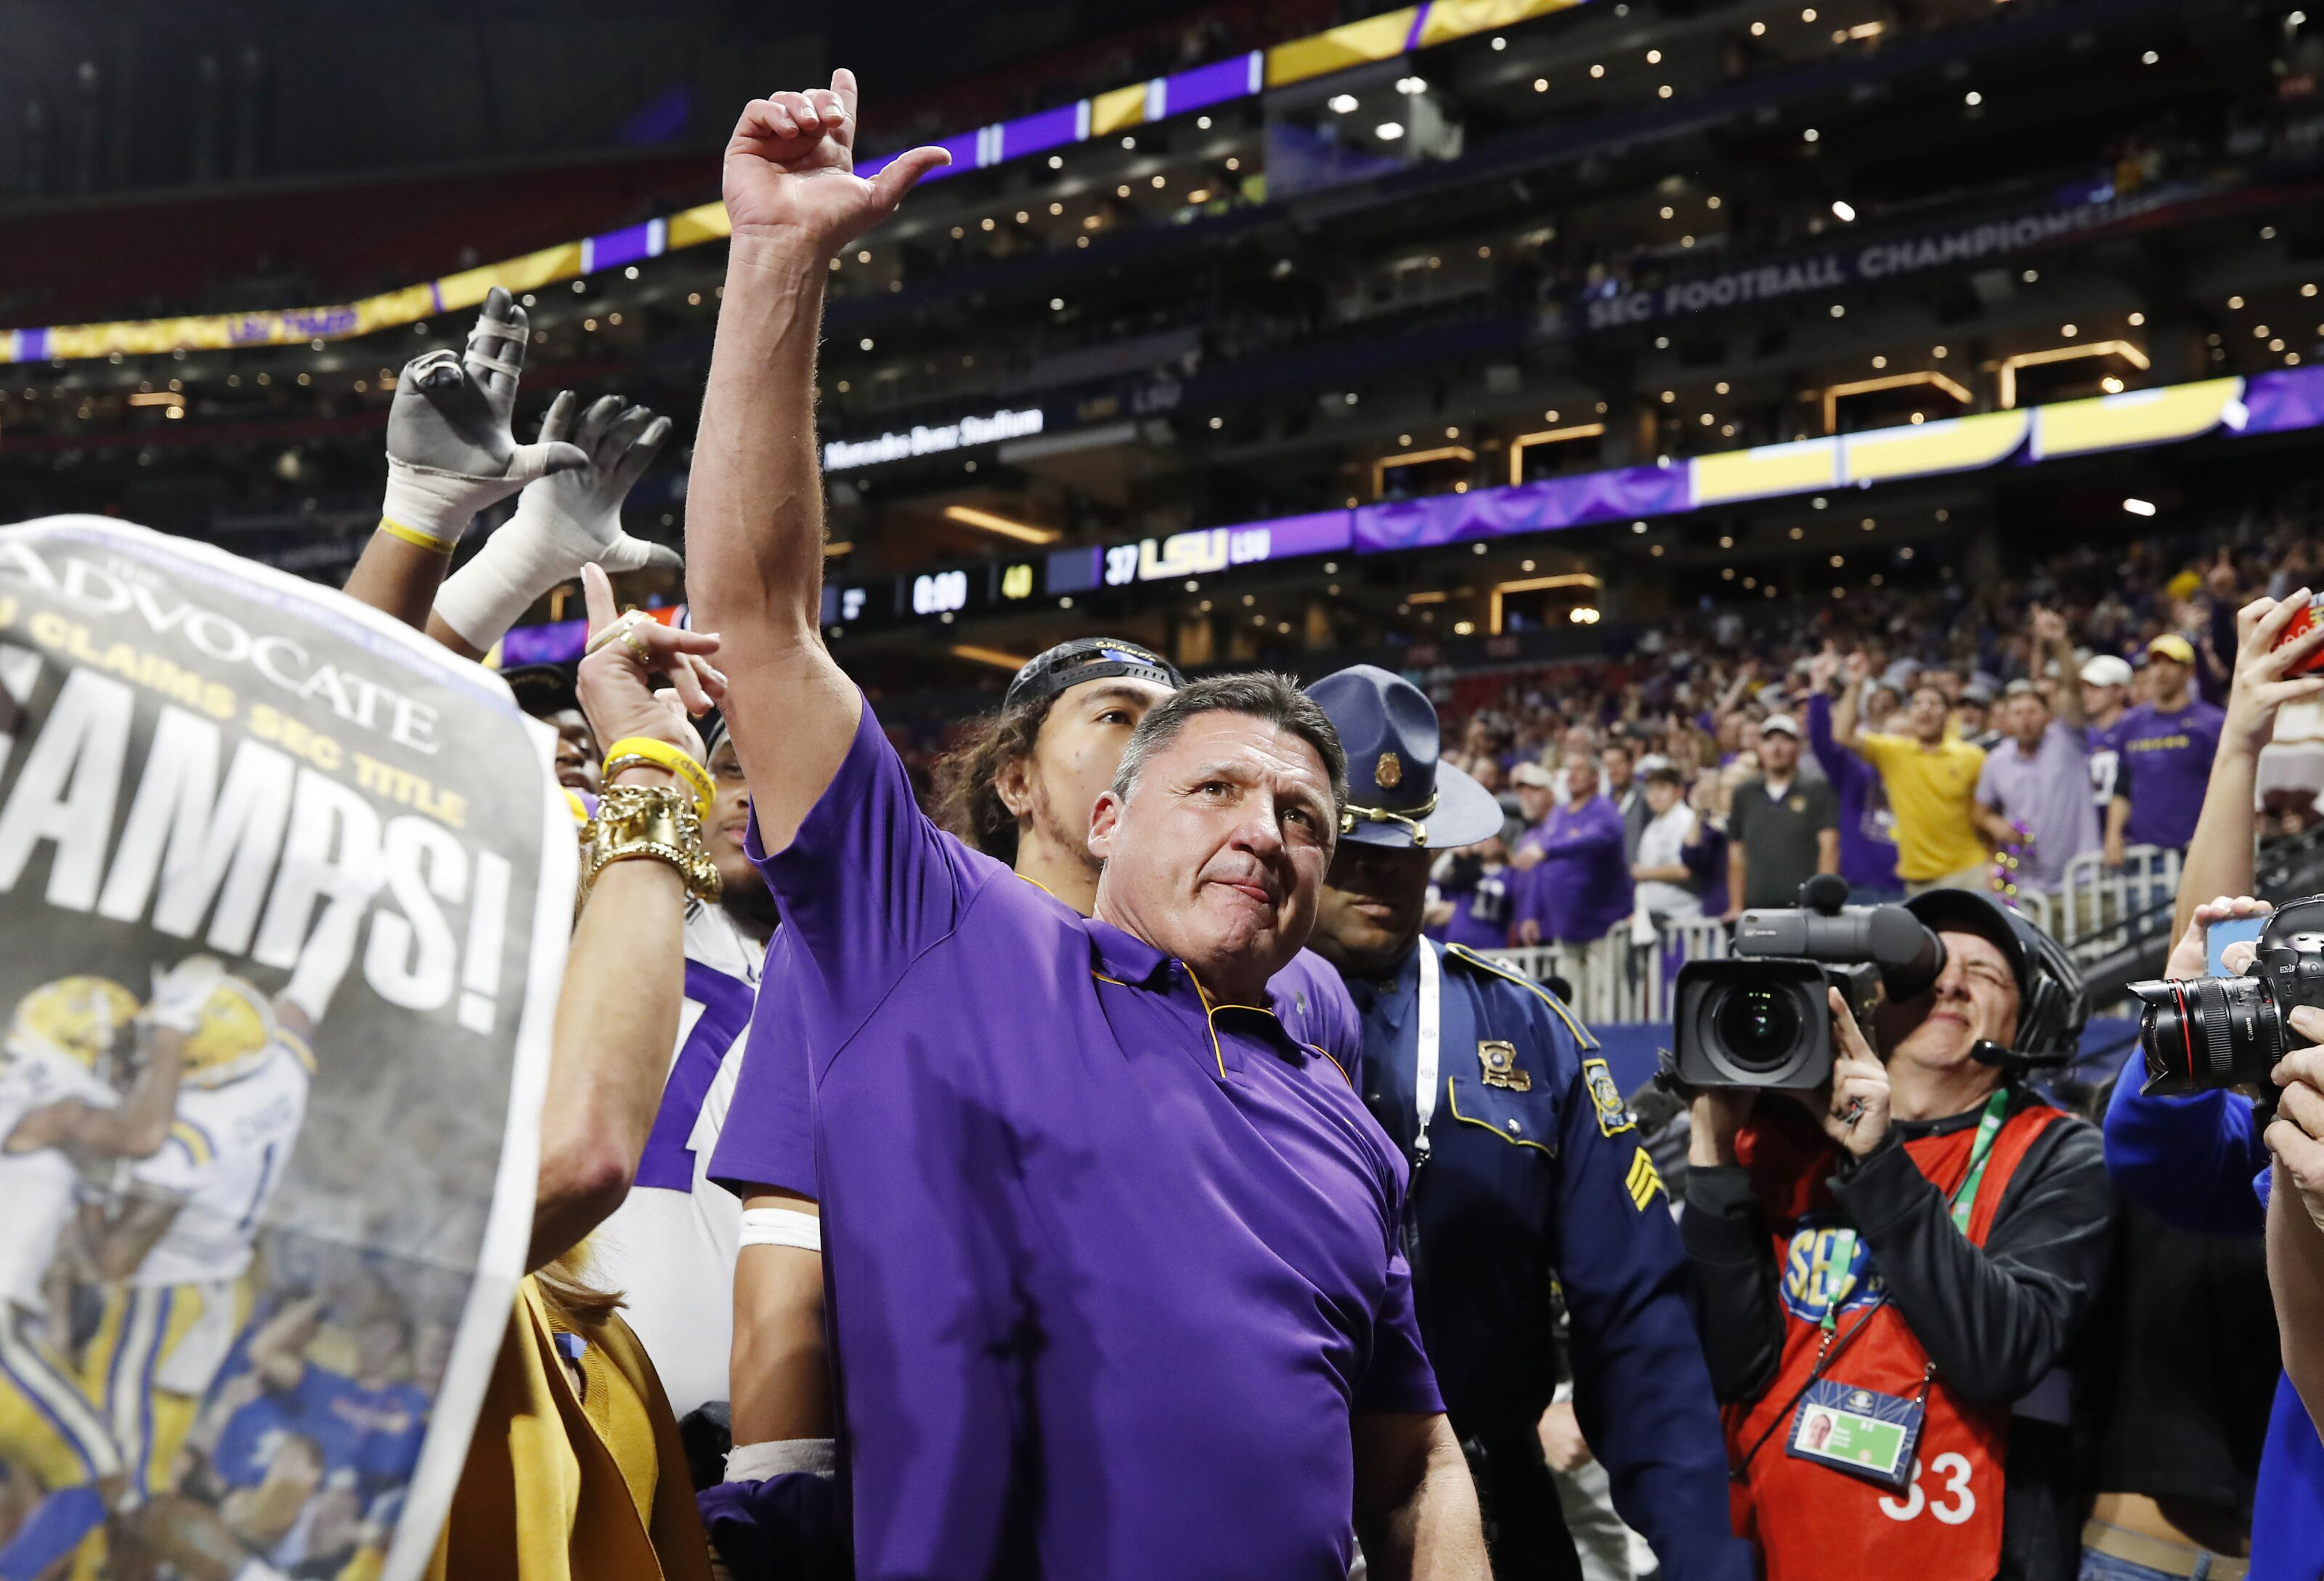 LSU Football: We've been saying it all along, LSU deserves to be No. 1